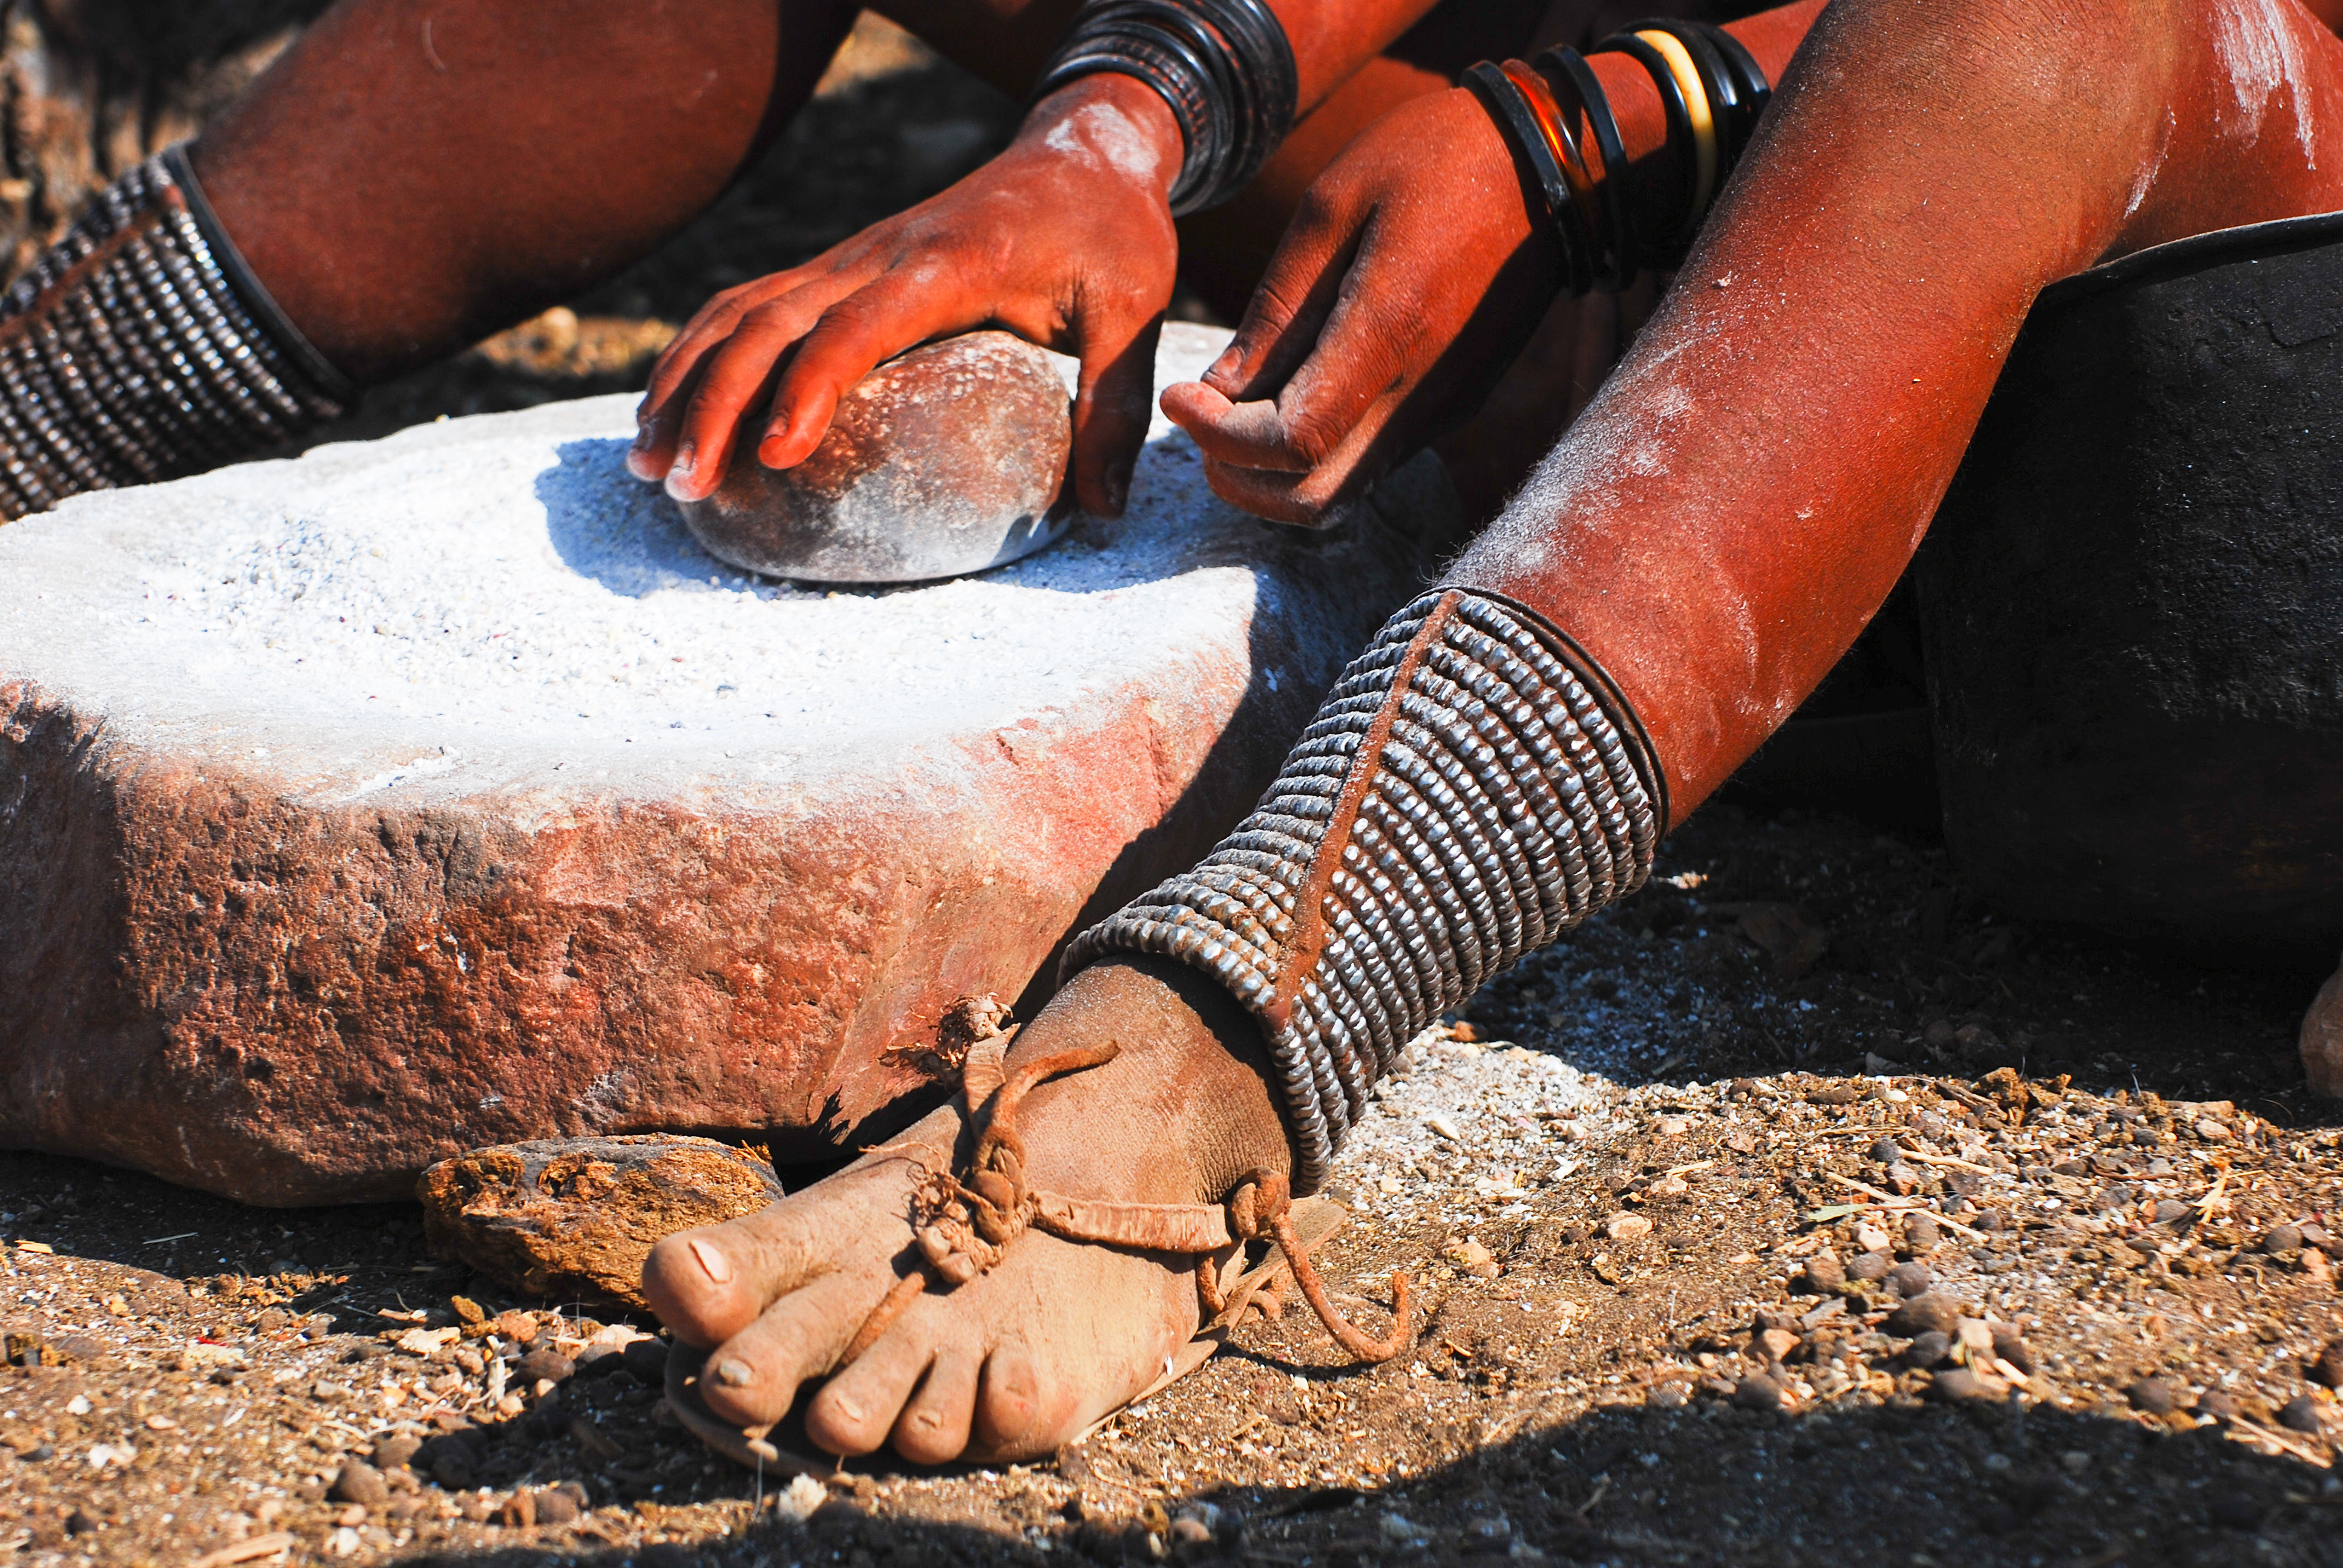 Namibia's Himba tribes retain traditional customs